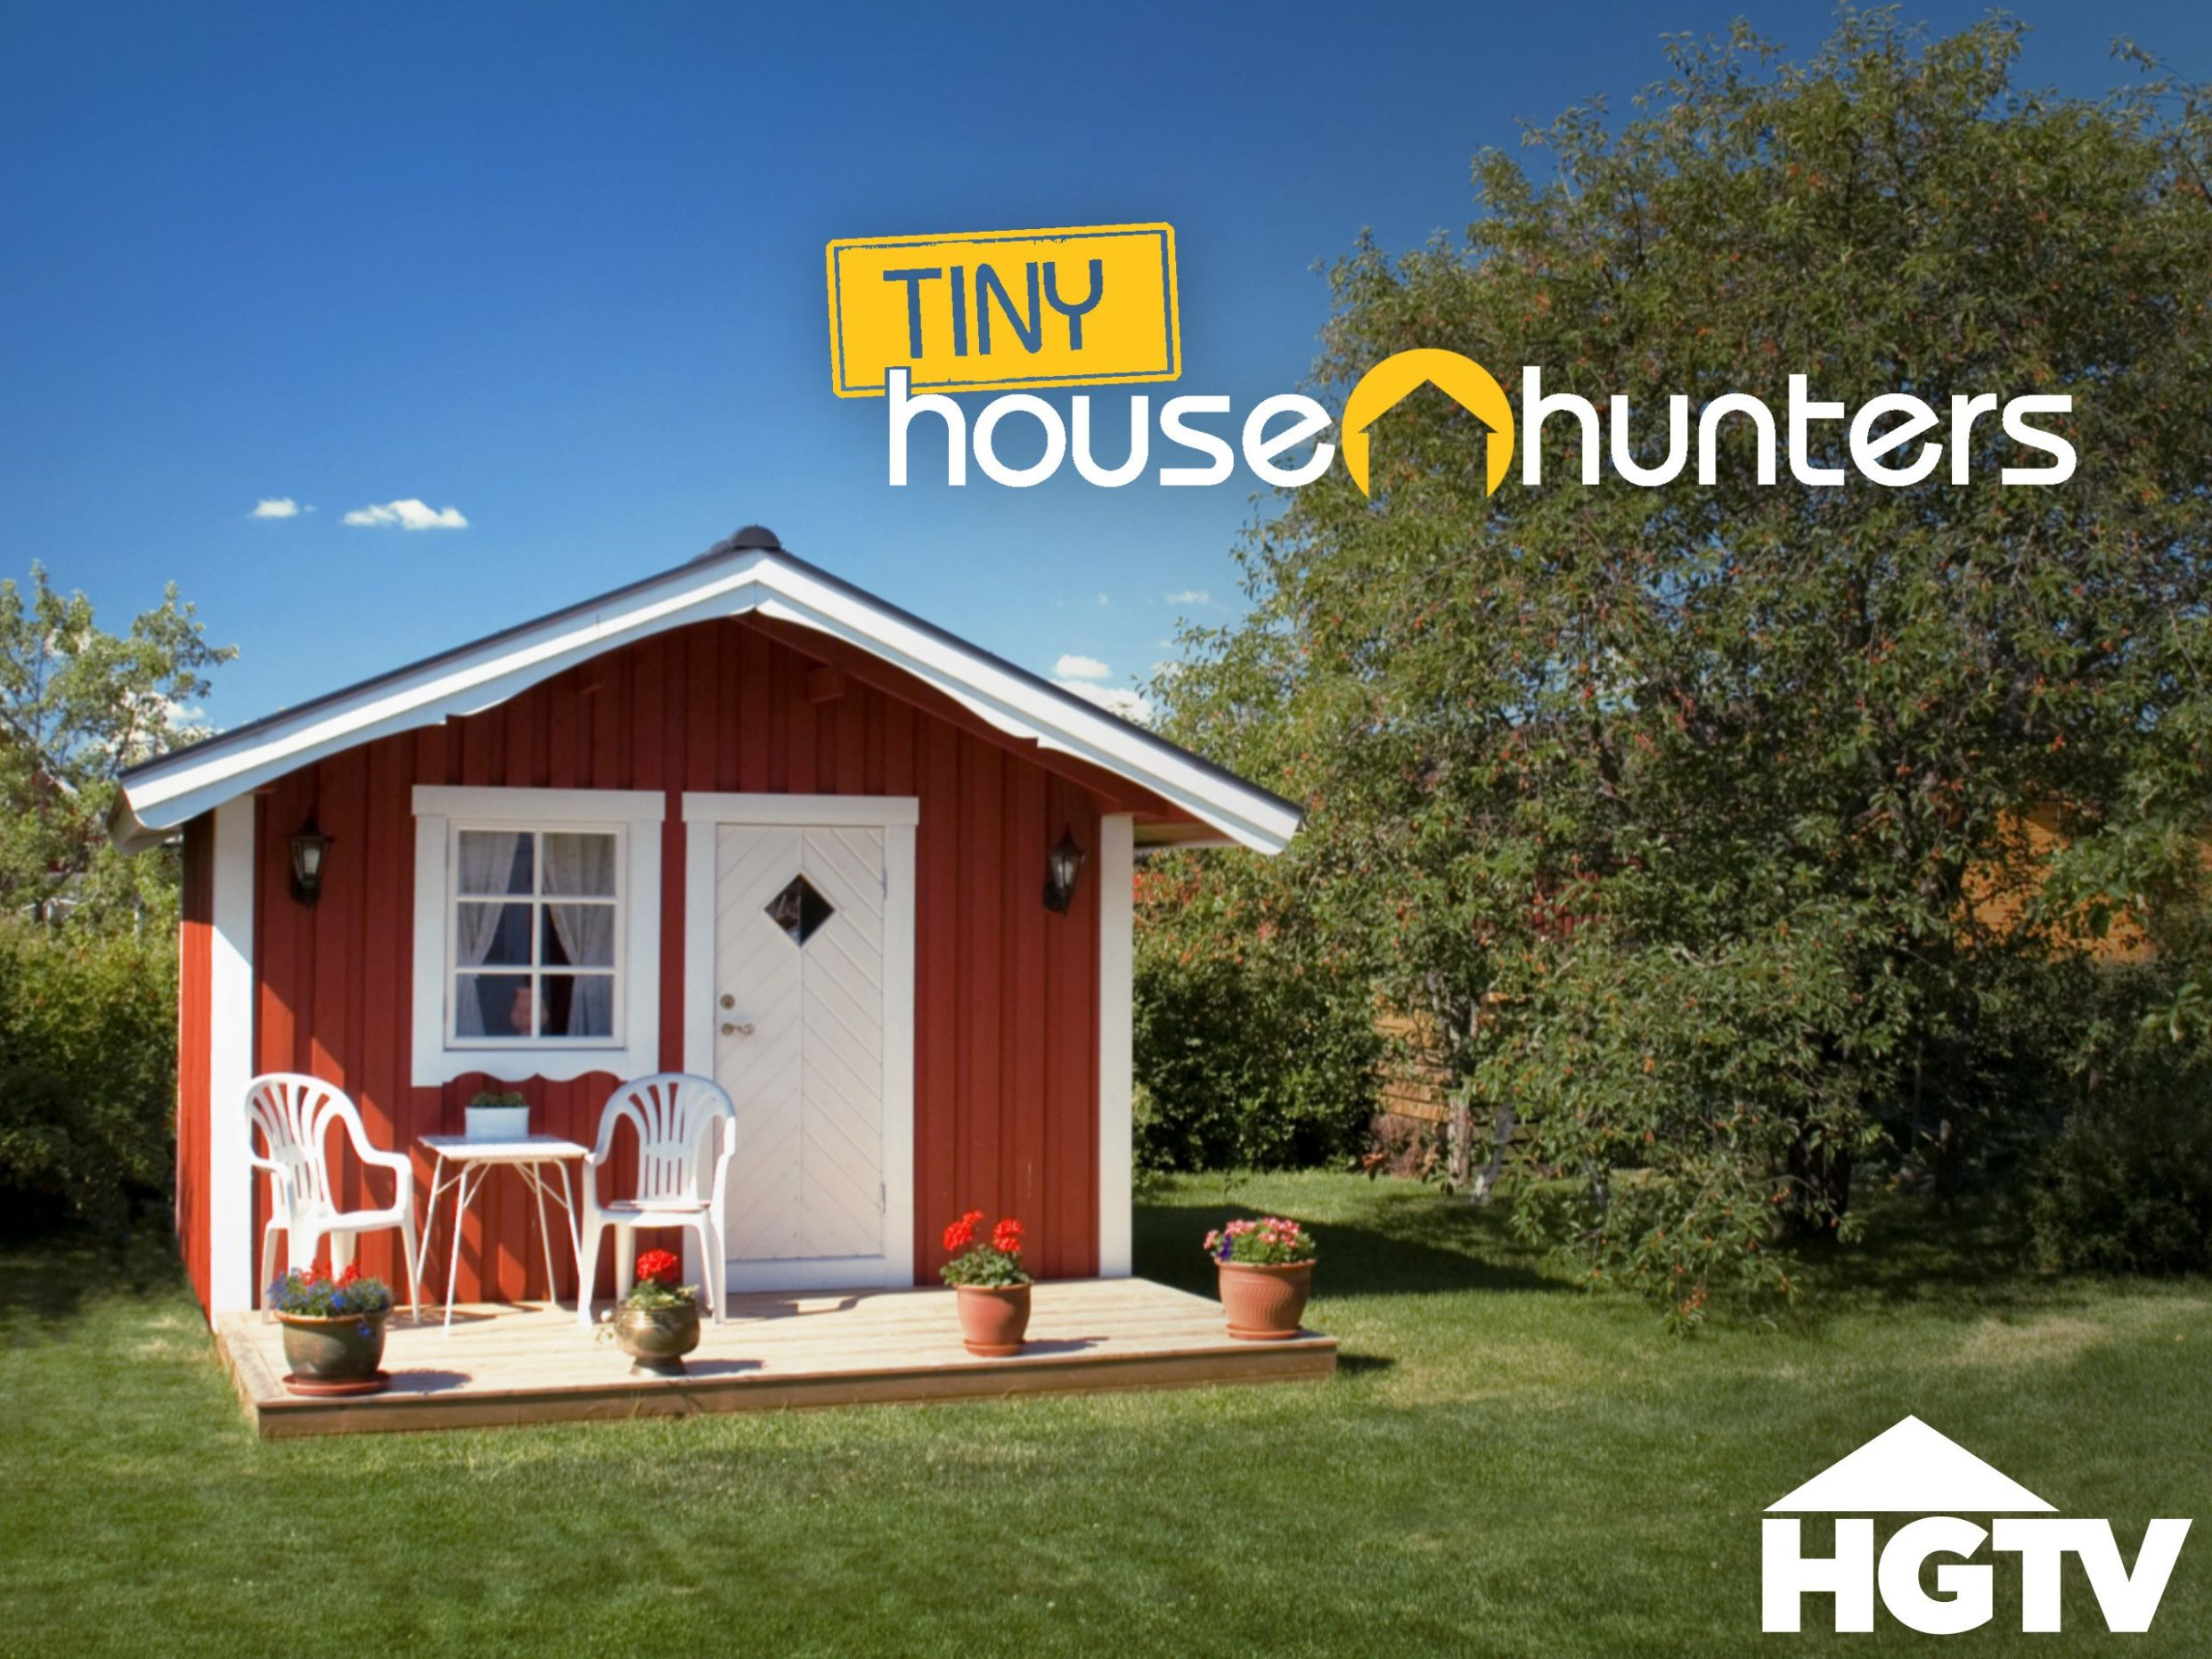 Amazon.com: Watch Tiny House Hunters Season 12 | Prime Video